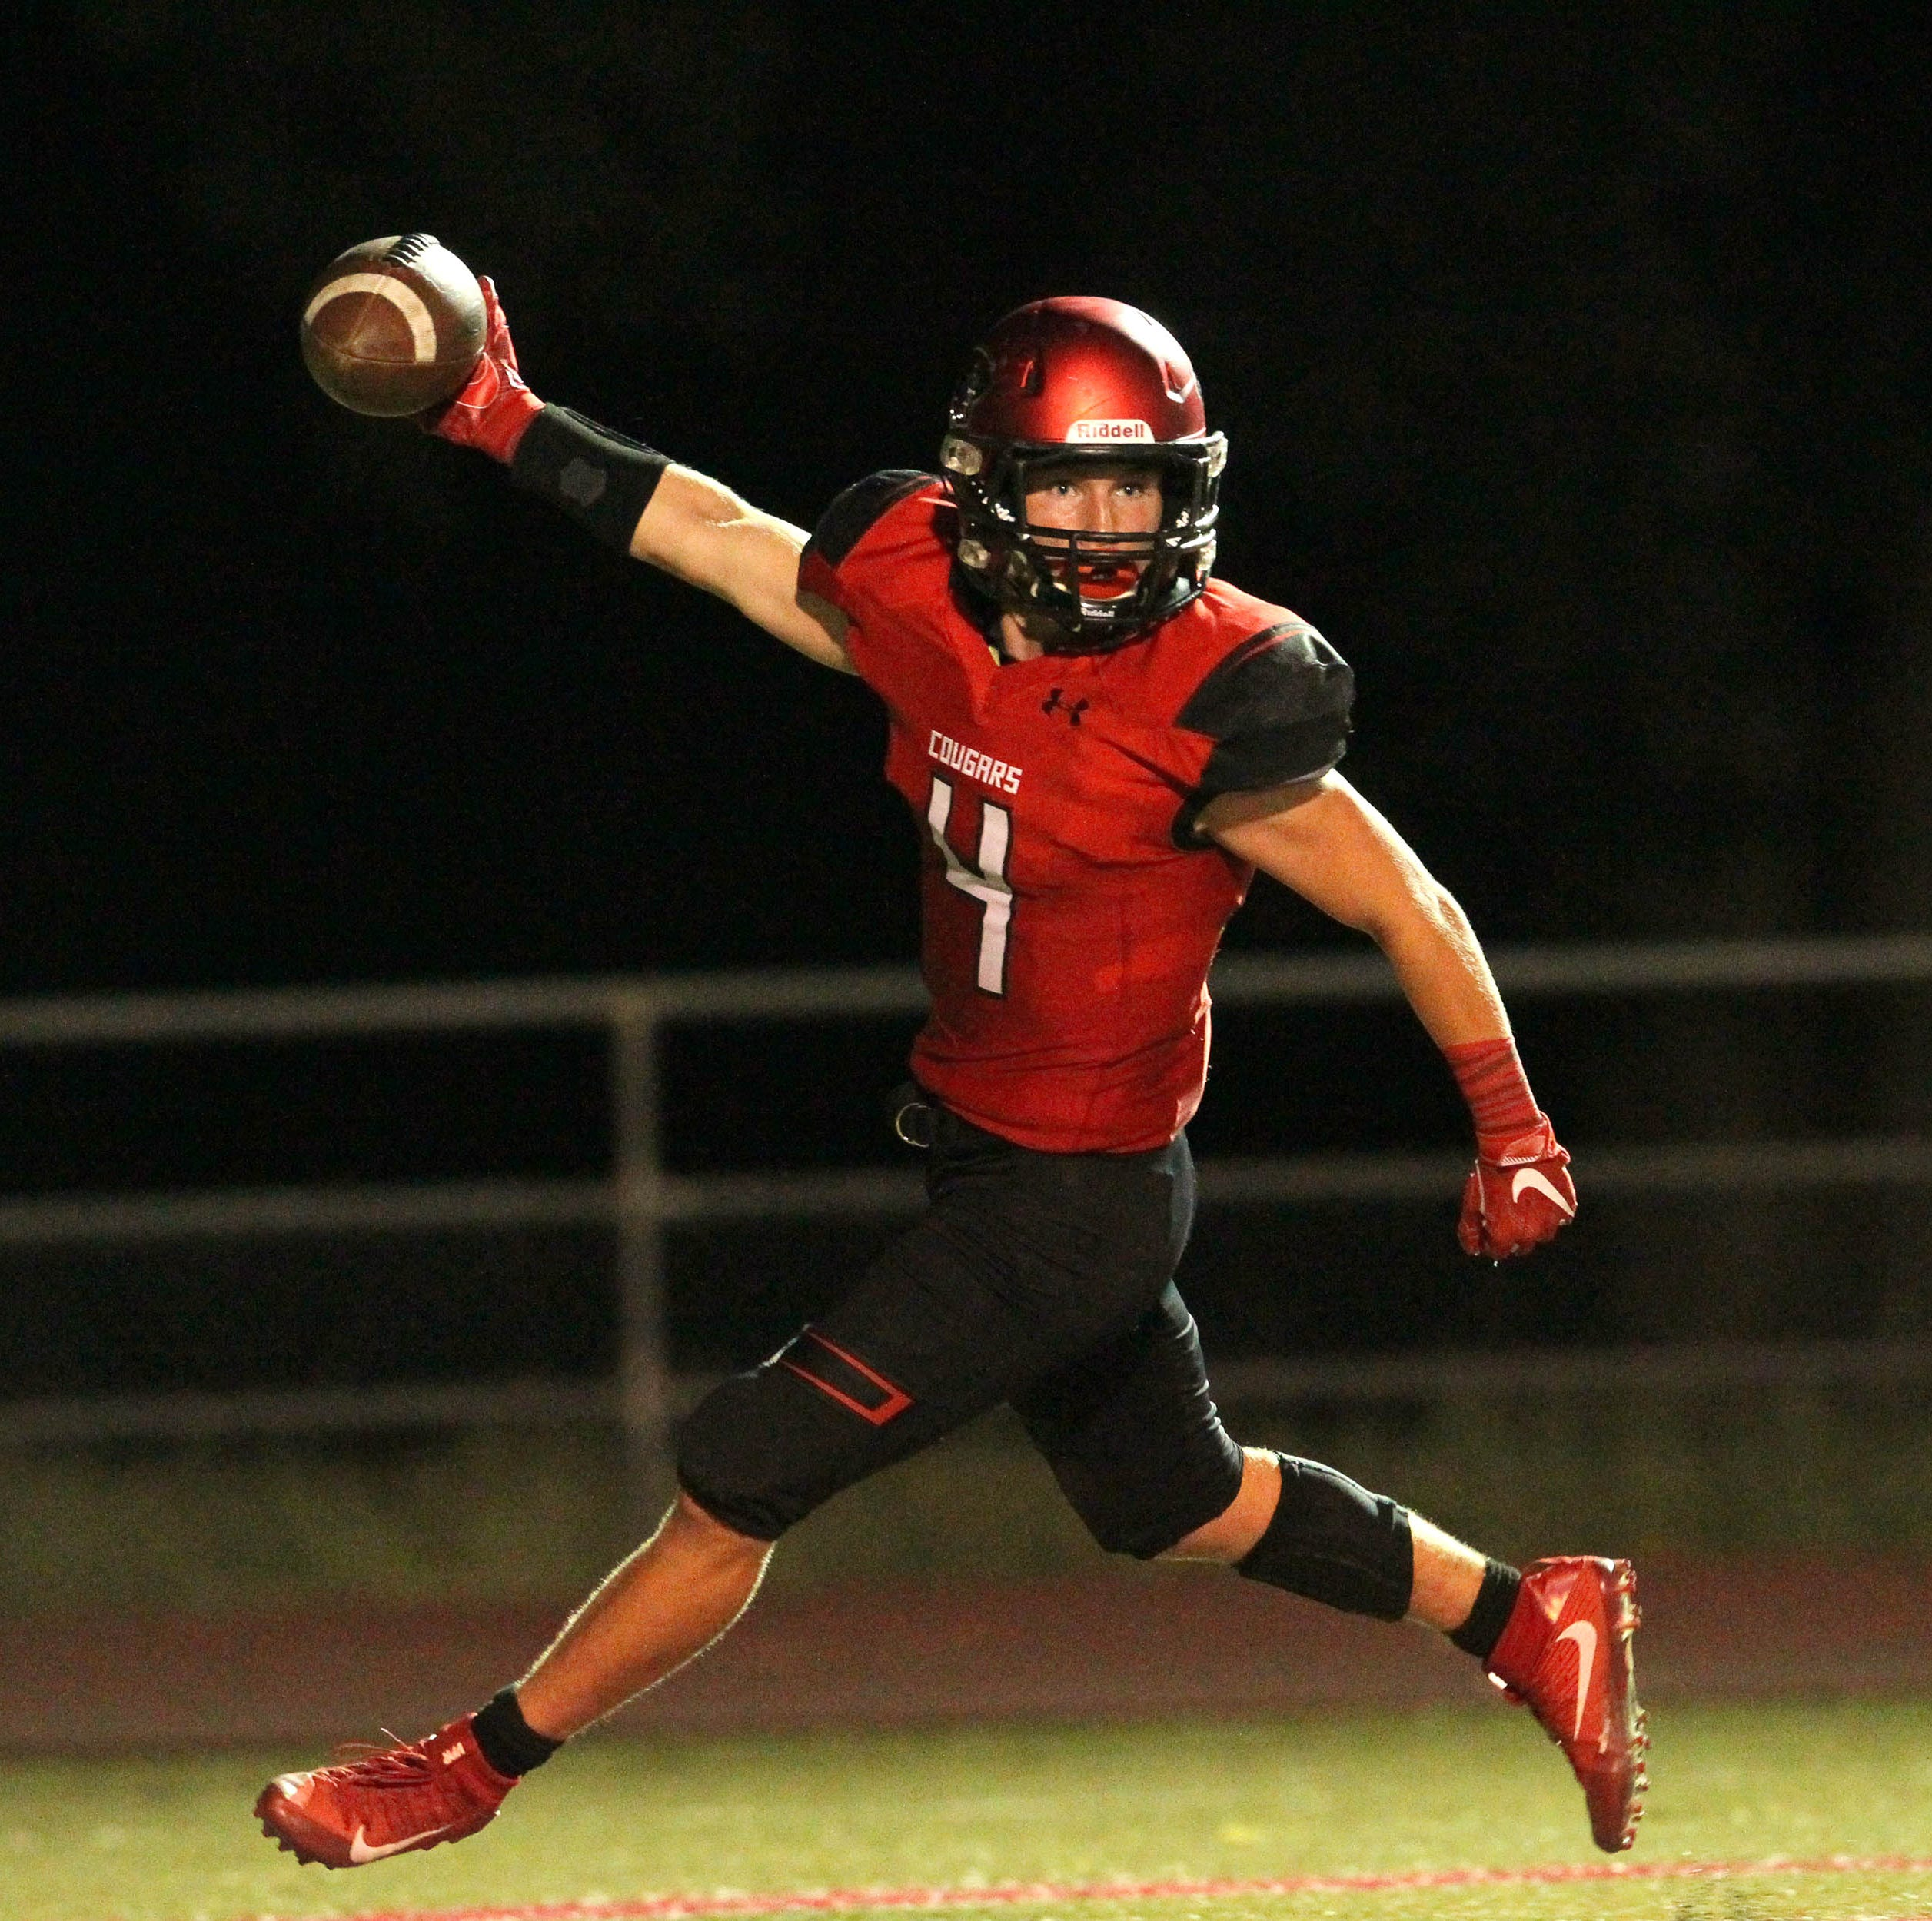 Football roundup: Foothill's come-from-behind win and other scores from the Redding area